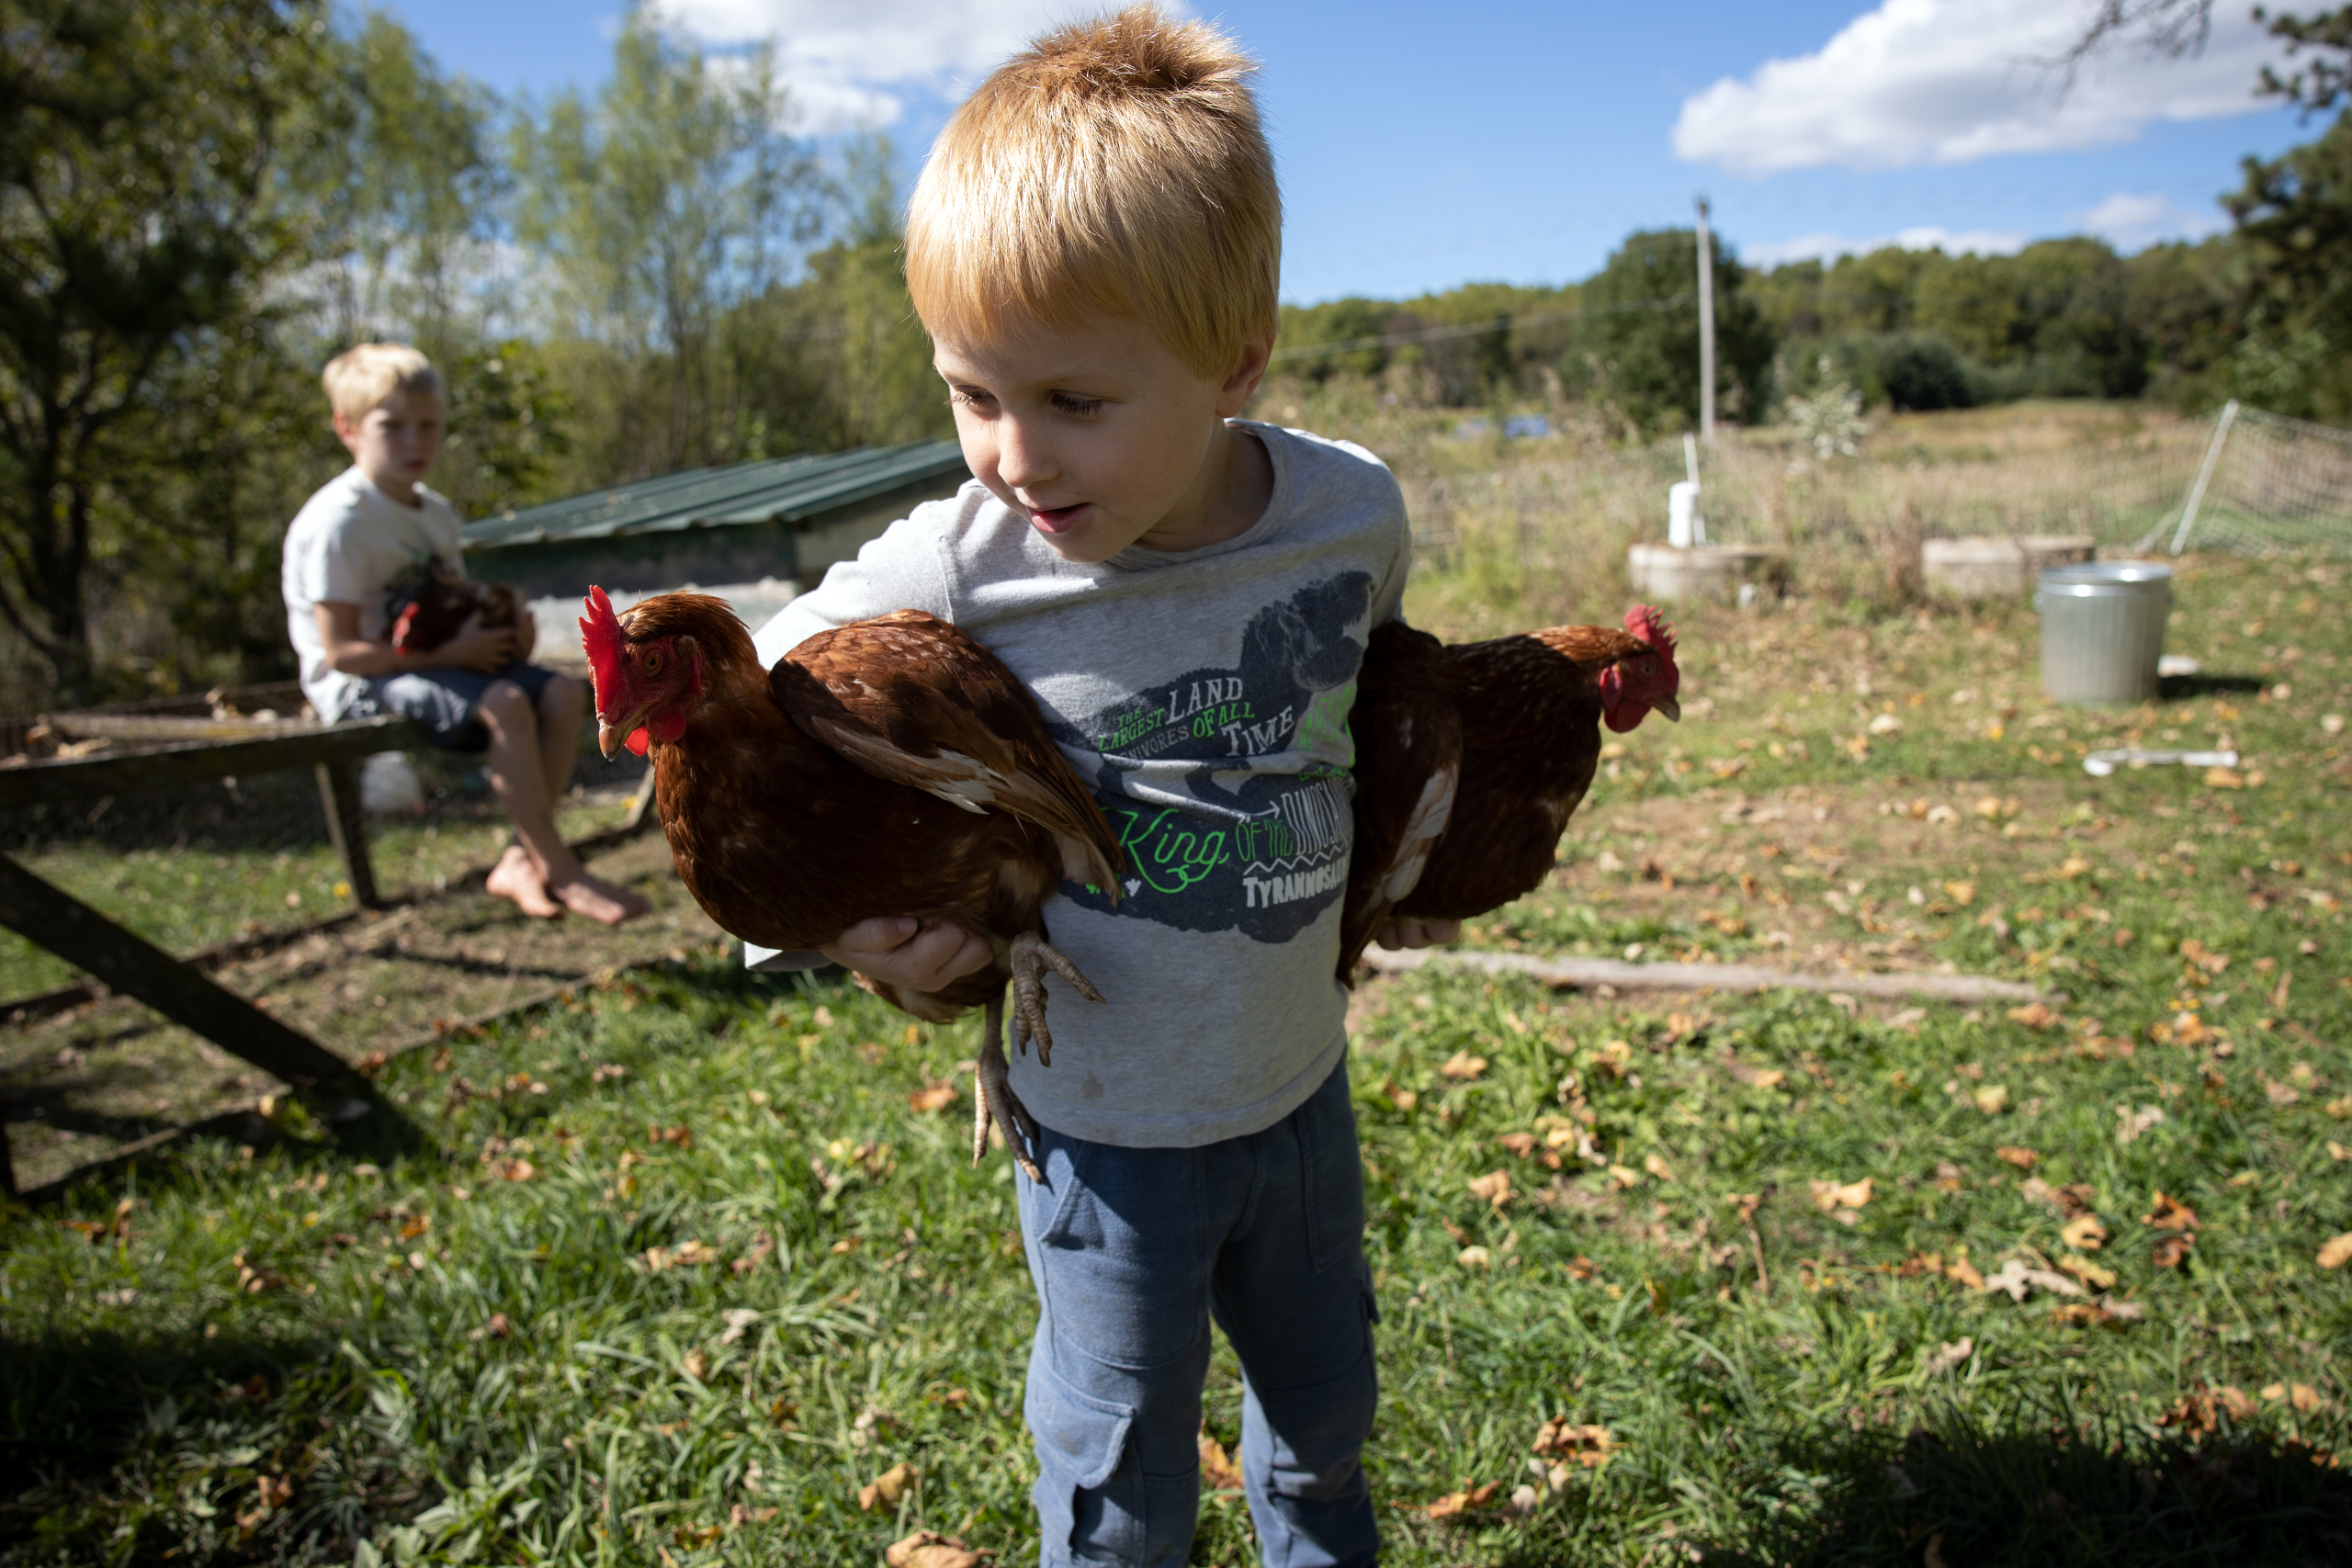 Matthias Millar, 5, foreground, and Sterling Millar, 7, hold chickens outside their father's house in Blue Mounds, Wis., on Sept. 18, 2020. Matthias is in kindergarten and Sterling is in second grade. Both attended school virtually for the first month due to the COVID-19 pandemic. They returned to class Oct. 1, but the Barneveld School District has now suspended in-person instruction because of a positive case in the district. Their sister Adara, 10, is in fifth grade. Their father Matt Millar works from home as a data scientist, and says he doesn't have a lot of extra time to manage his children's education.